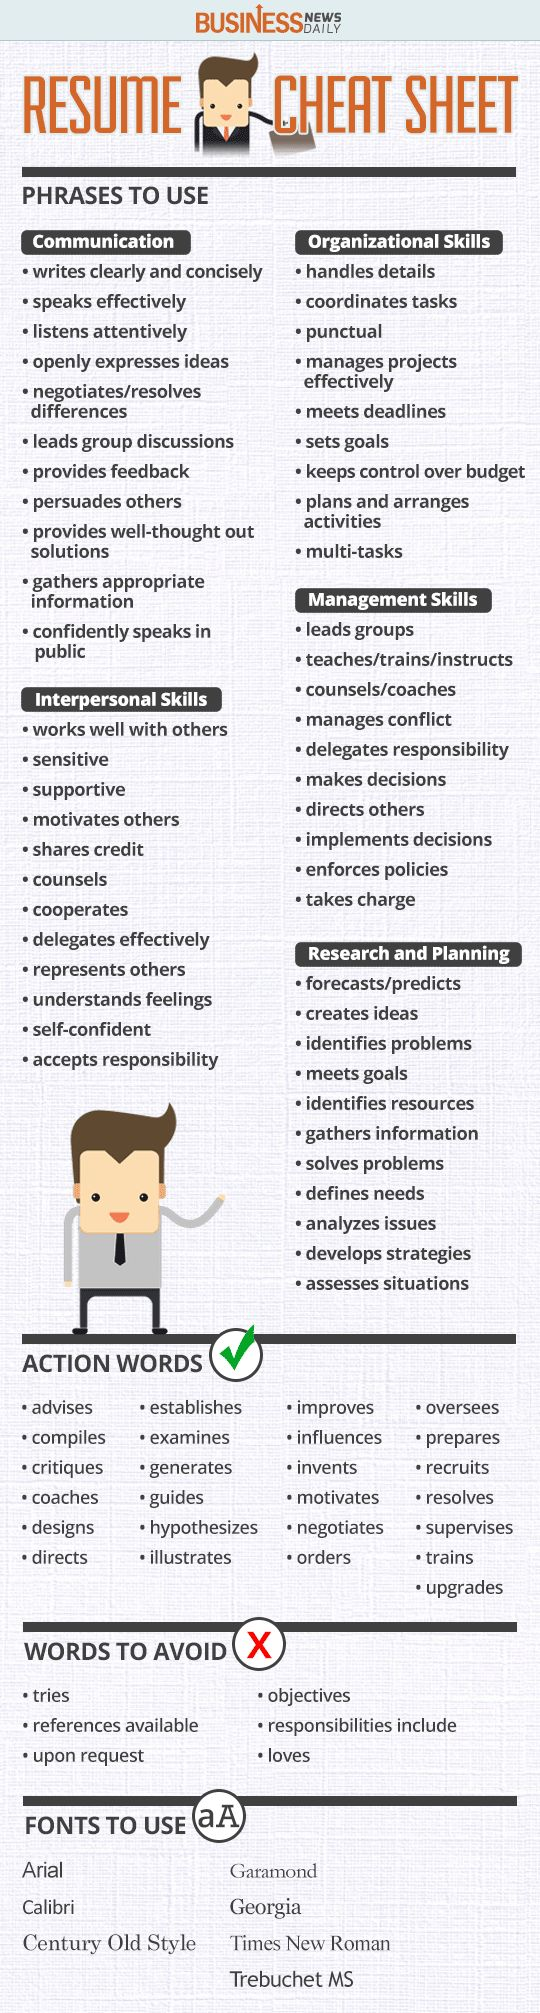 Opposenewapstandardsus  Wonderful  Ideas About Resume On Pinterest  Cv Format Resume  With Exquisite Resume Cheat Sheet Infographic Andrews Almost Done With A Complete Unit On Employment Which With Alluring Construction Supervisor Resume Also Case Manager Resume Objective In Addition Quality Assurance Analyst Resume And Certifications For Resume As Well As Housekeeping Resume Examples Additionally Federal Government Resume Sample From Pinterestcom With Opposenewapstandardsus  Exquisite  Ideas About Resume On Pinterest  Cv Format Resume  With Alluring Resume Cheat Sheet Infographic Andrews Almost Done With A Complete Unit On Employment Which And Wonderful Construction Supervisor Resume Also Case Manager Resume Objective In Addition Quality Assurance Analyst Resume From Pinterestcom